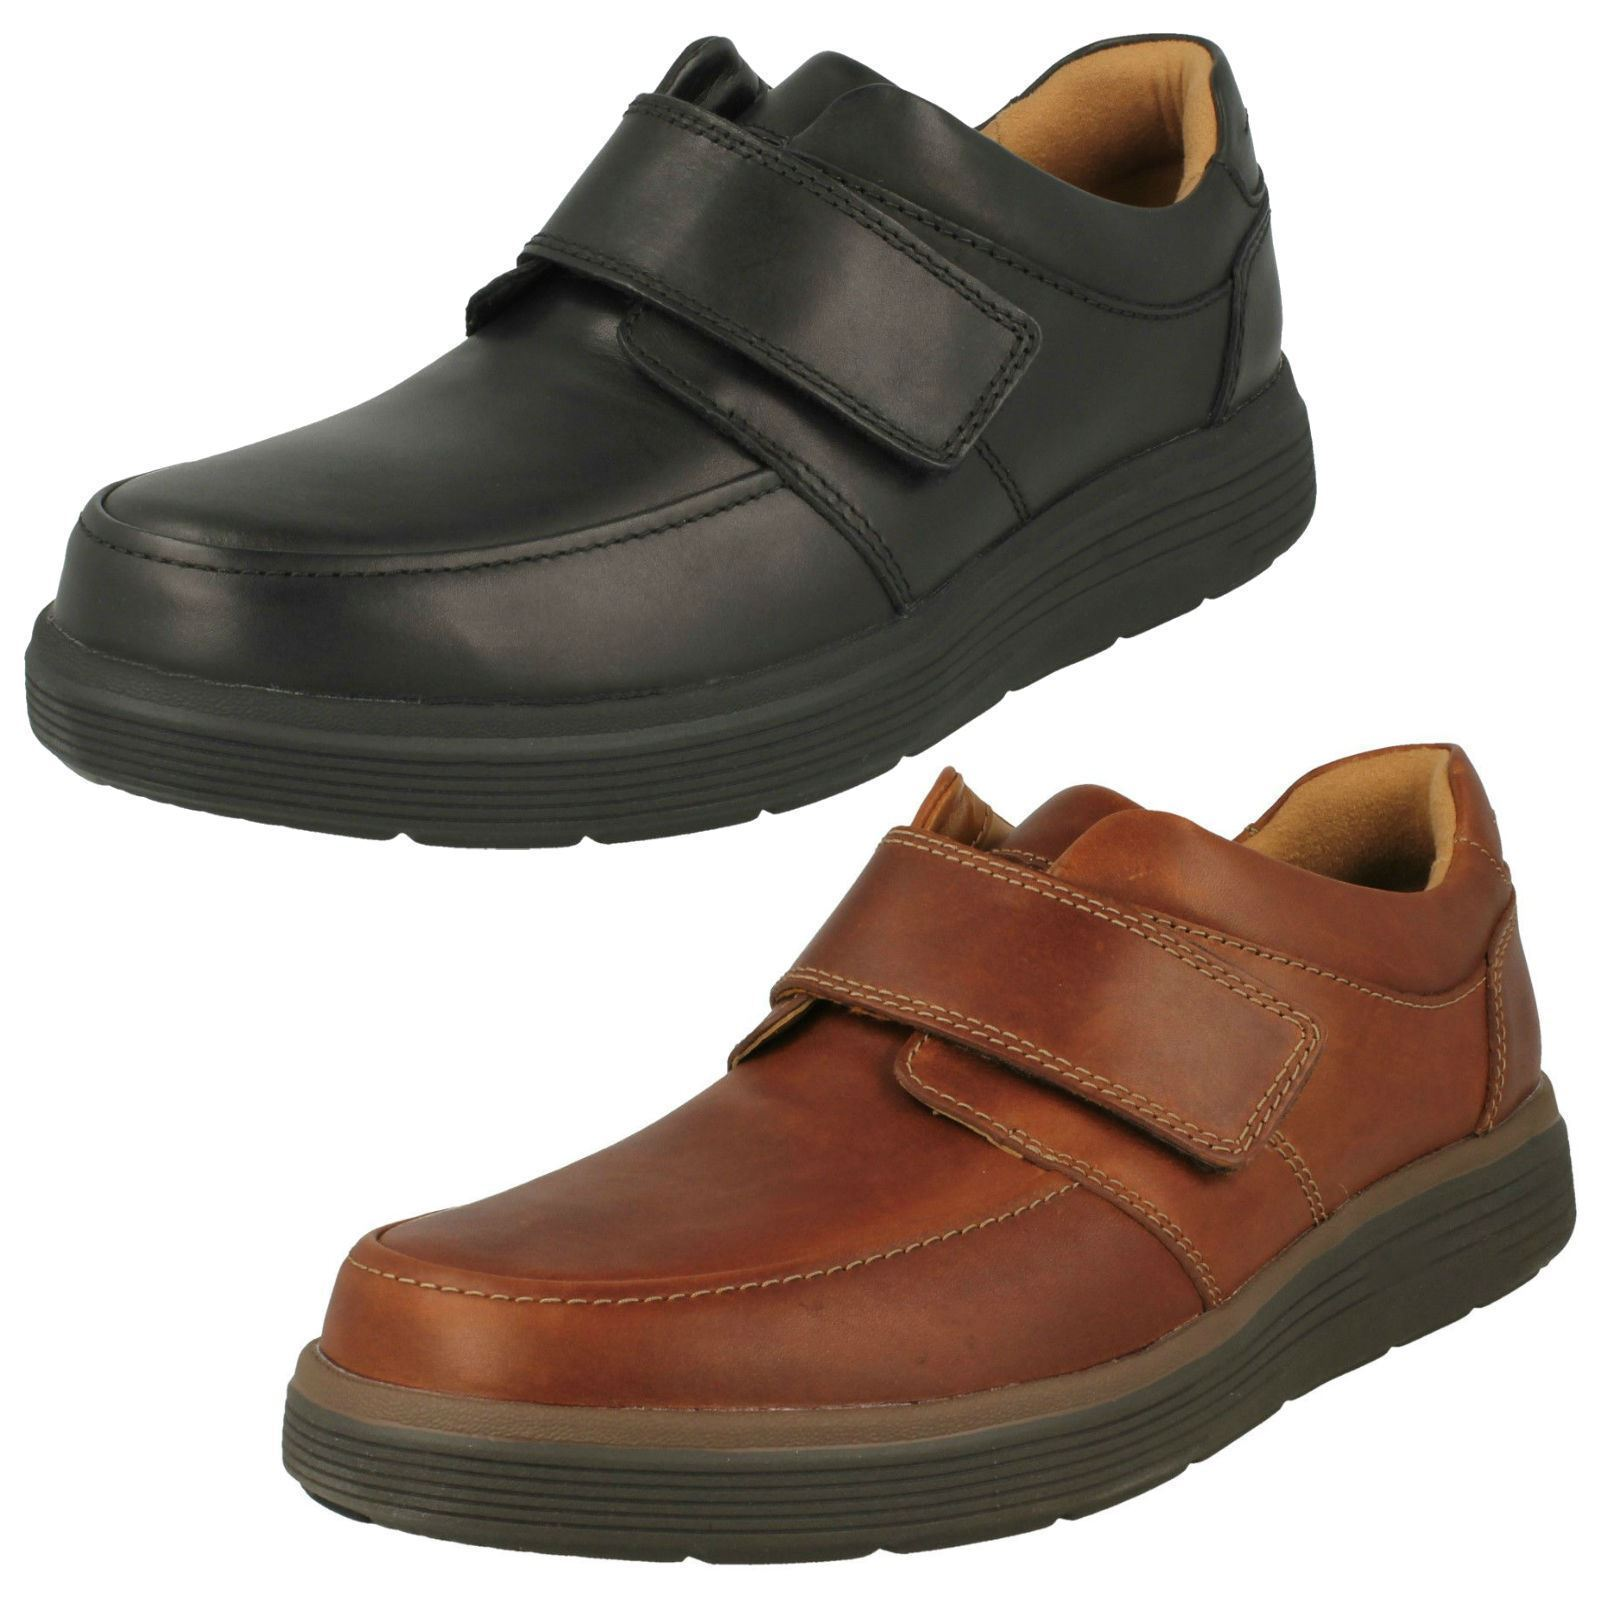 Mens Clarks Un Abode Strap Casual Leather Hook & Loop Strap shoes WIDE H Fitting